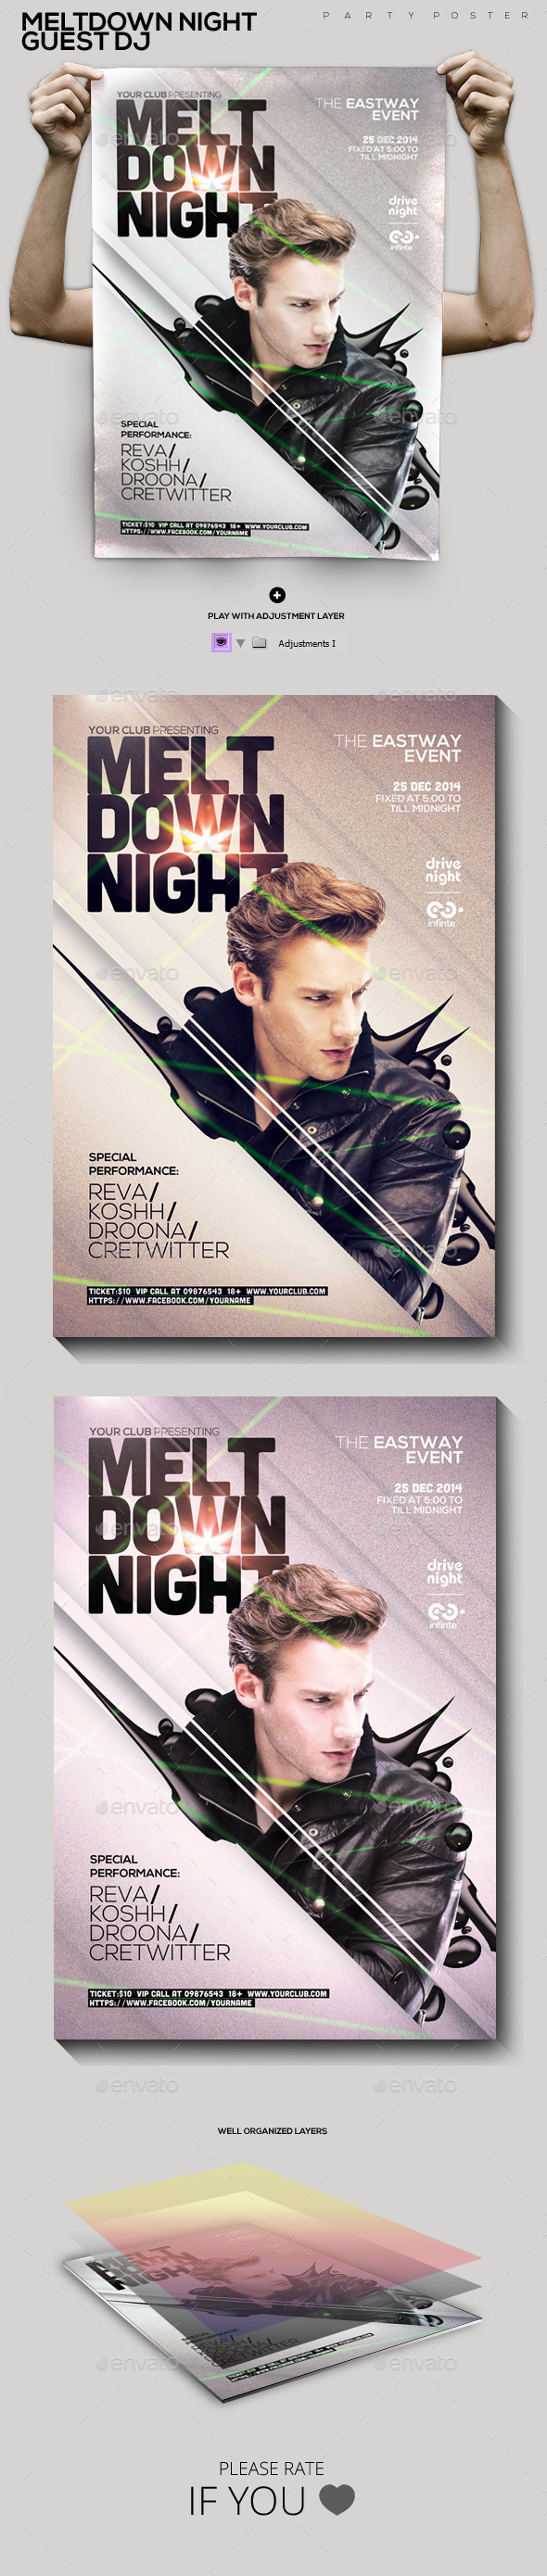 Meltdown Night Guest Dj Party Flyer/Poster - Clubs & Parties Events